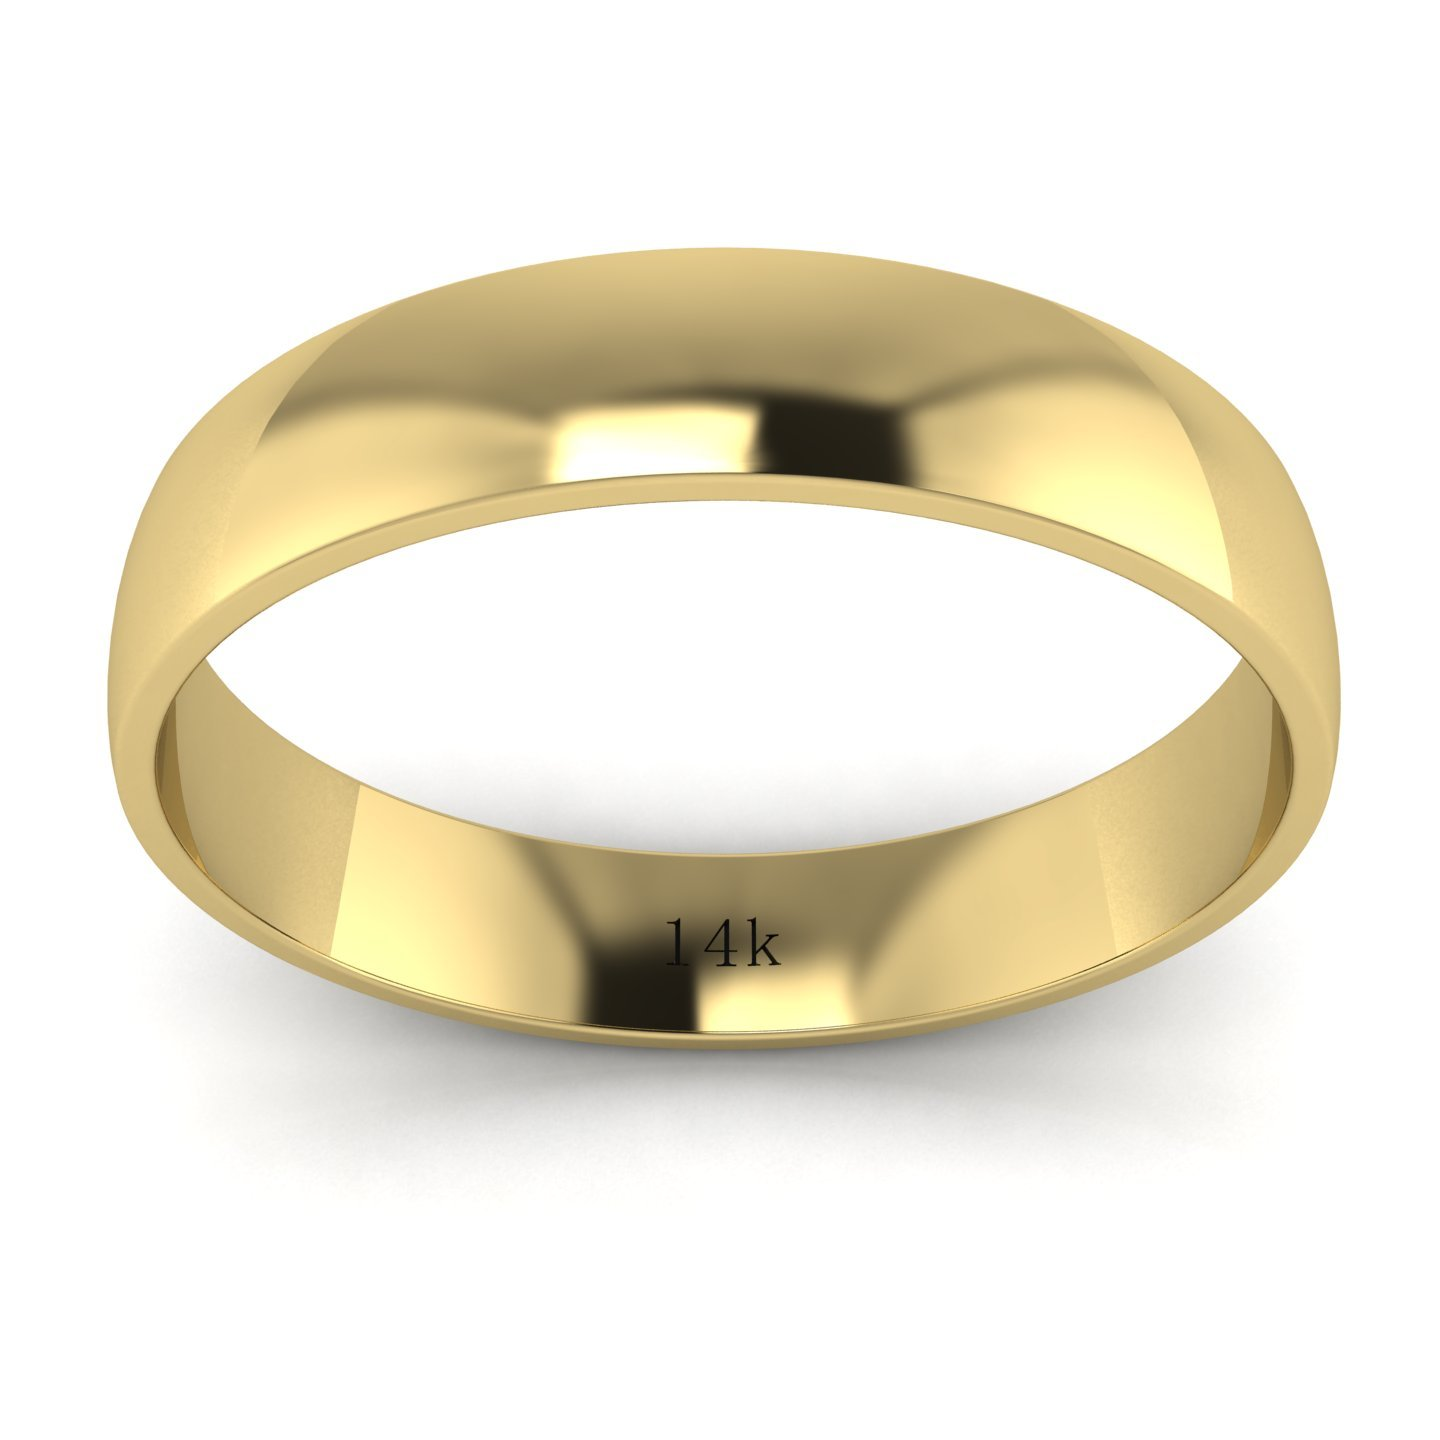 Unisex 14k Yellow Gold 4mm Light Court Shape Comfort Fit Polished Wedding Ring Plain Band (6.5) by LANDA JEWEL (Image #2)